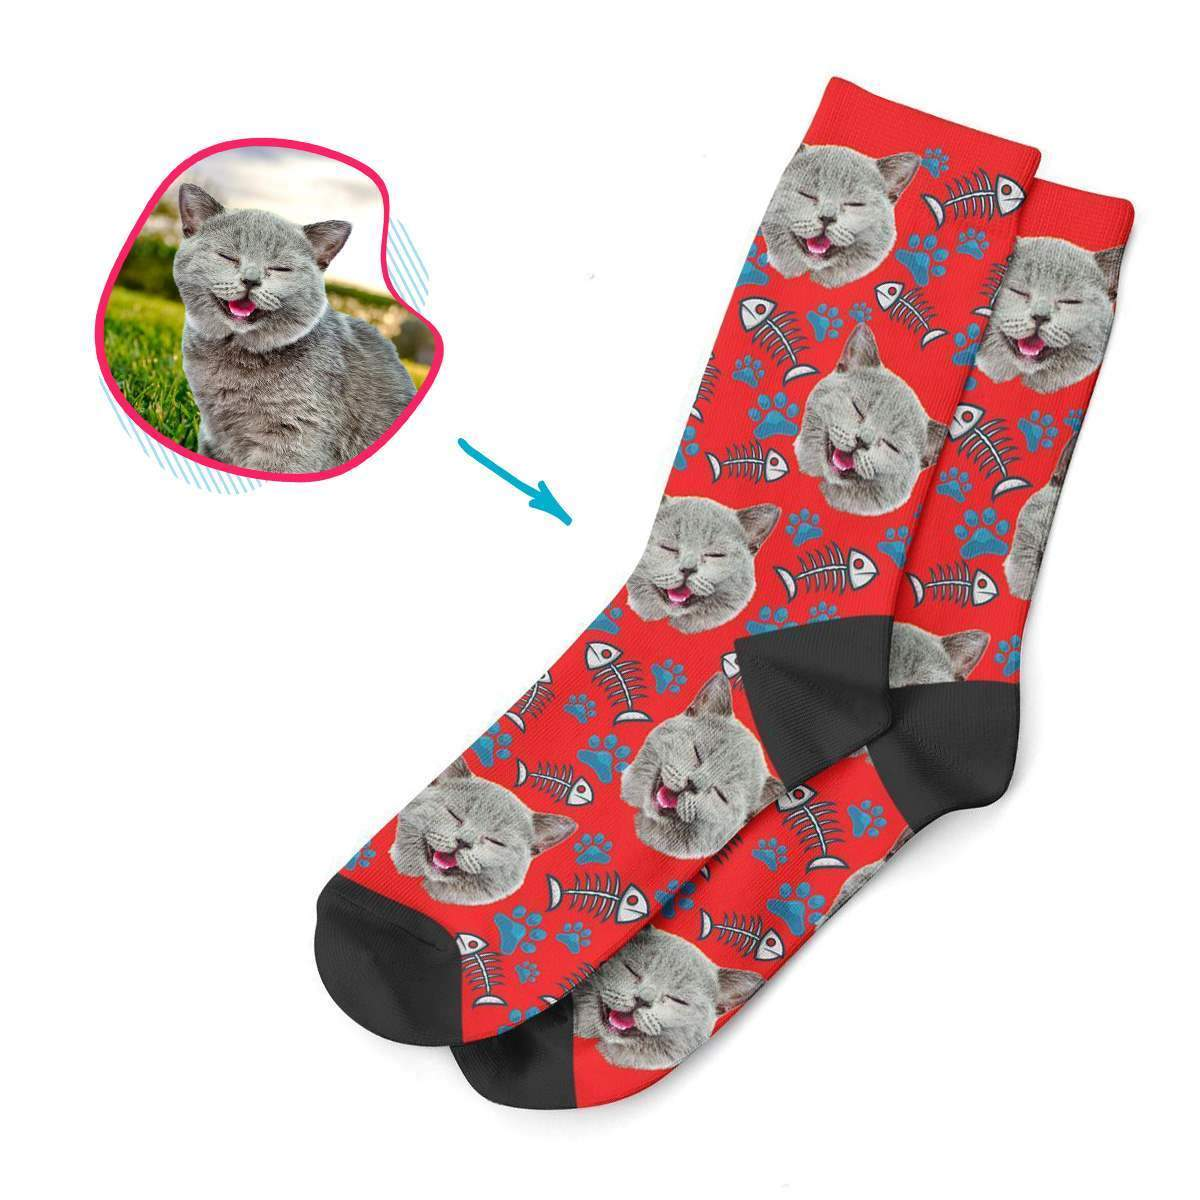 red Cat socks personalized with photo of face printed on them